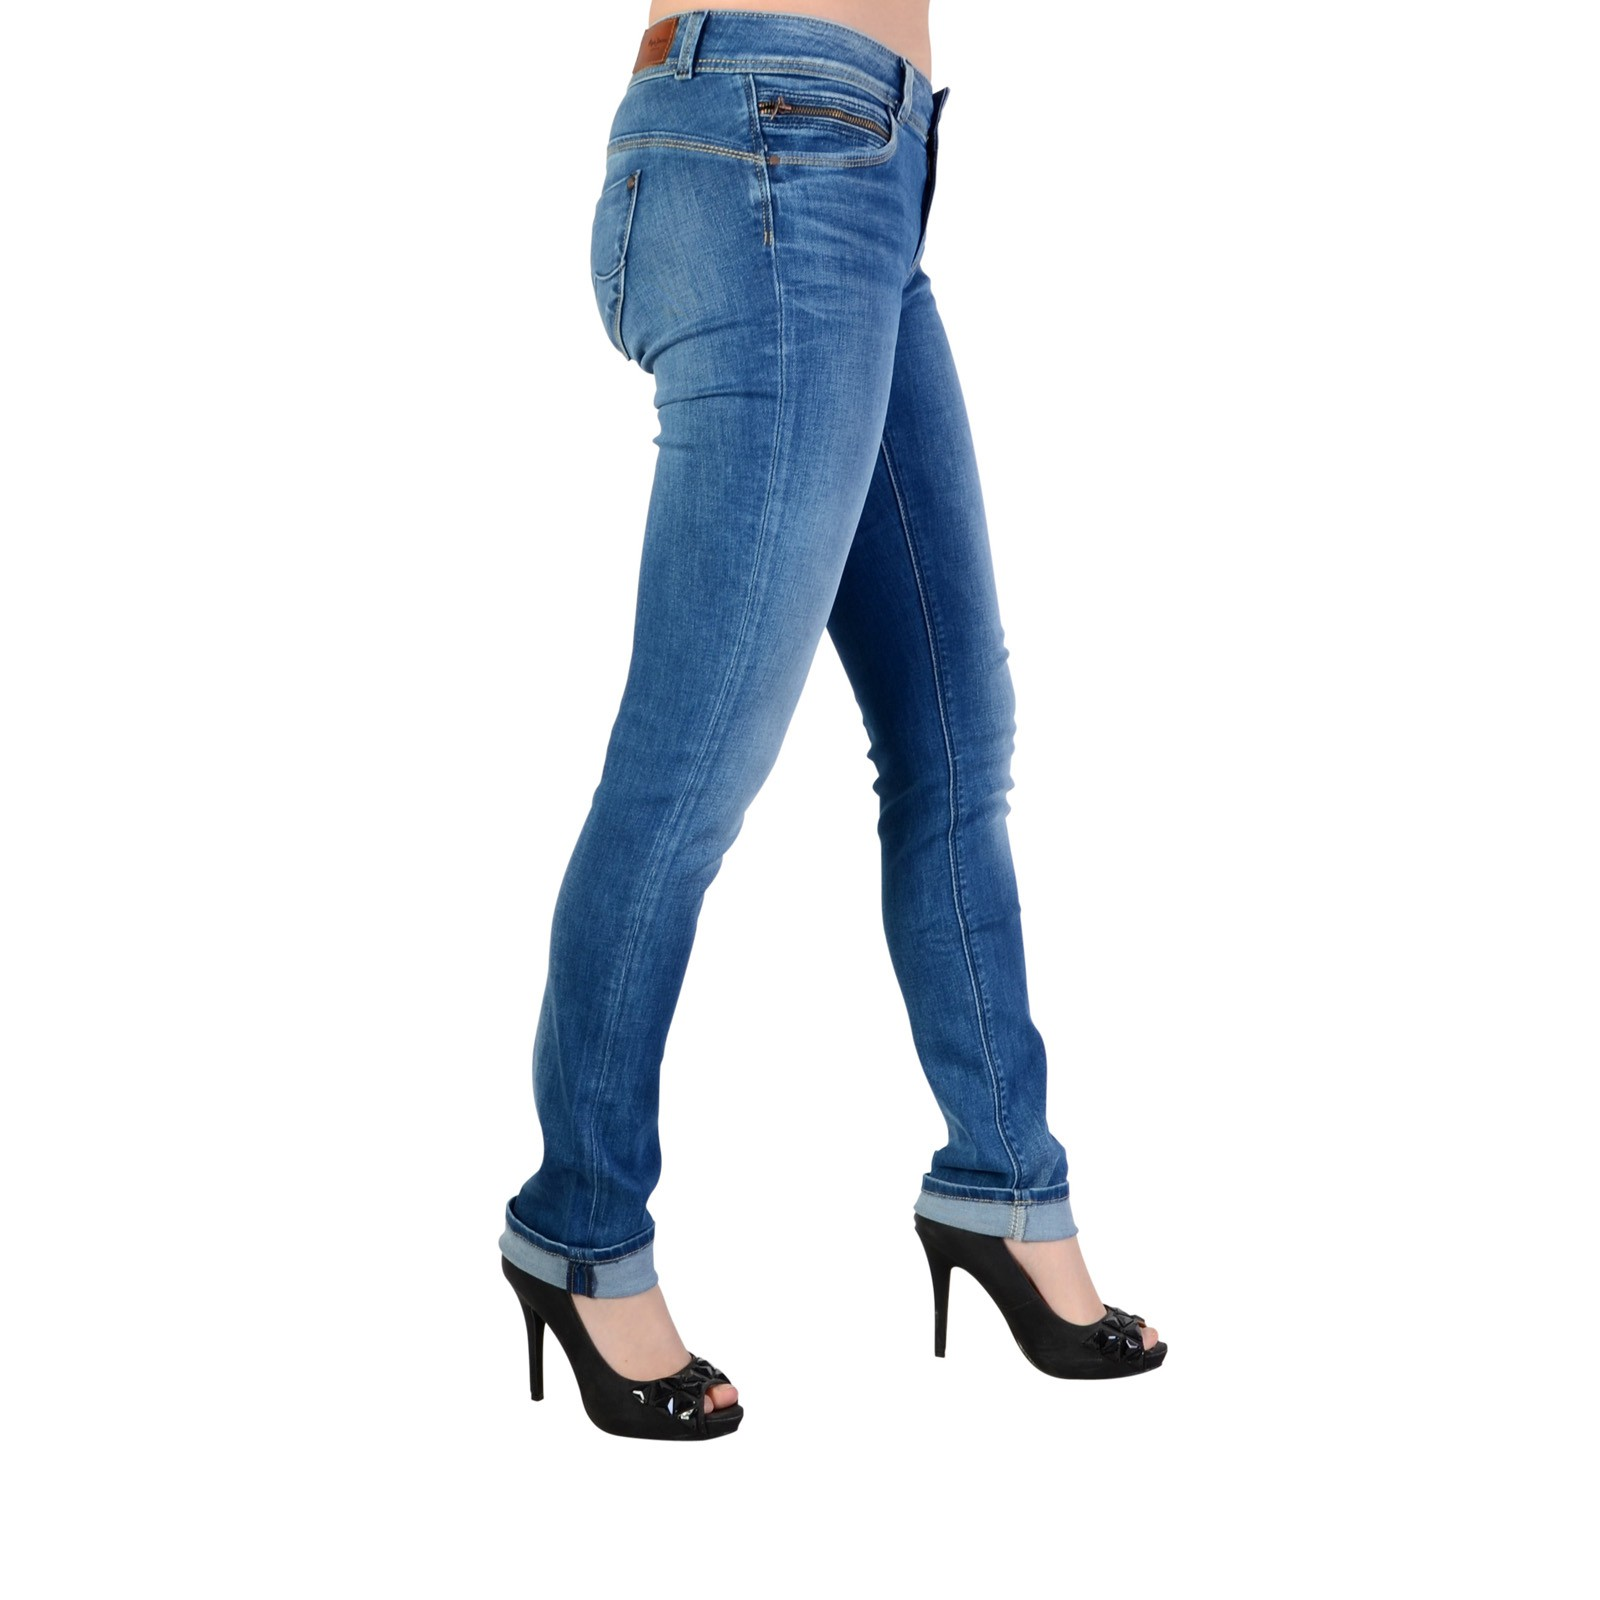 Jeans Pepe Pepe Jeans Pepe New New Jeans Brooke Brooke New Y1qfpw